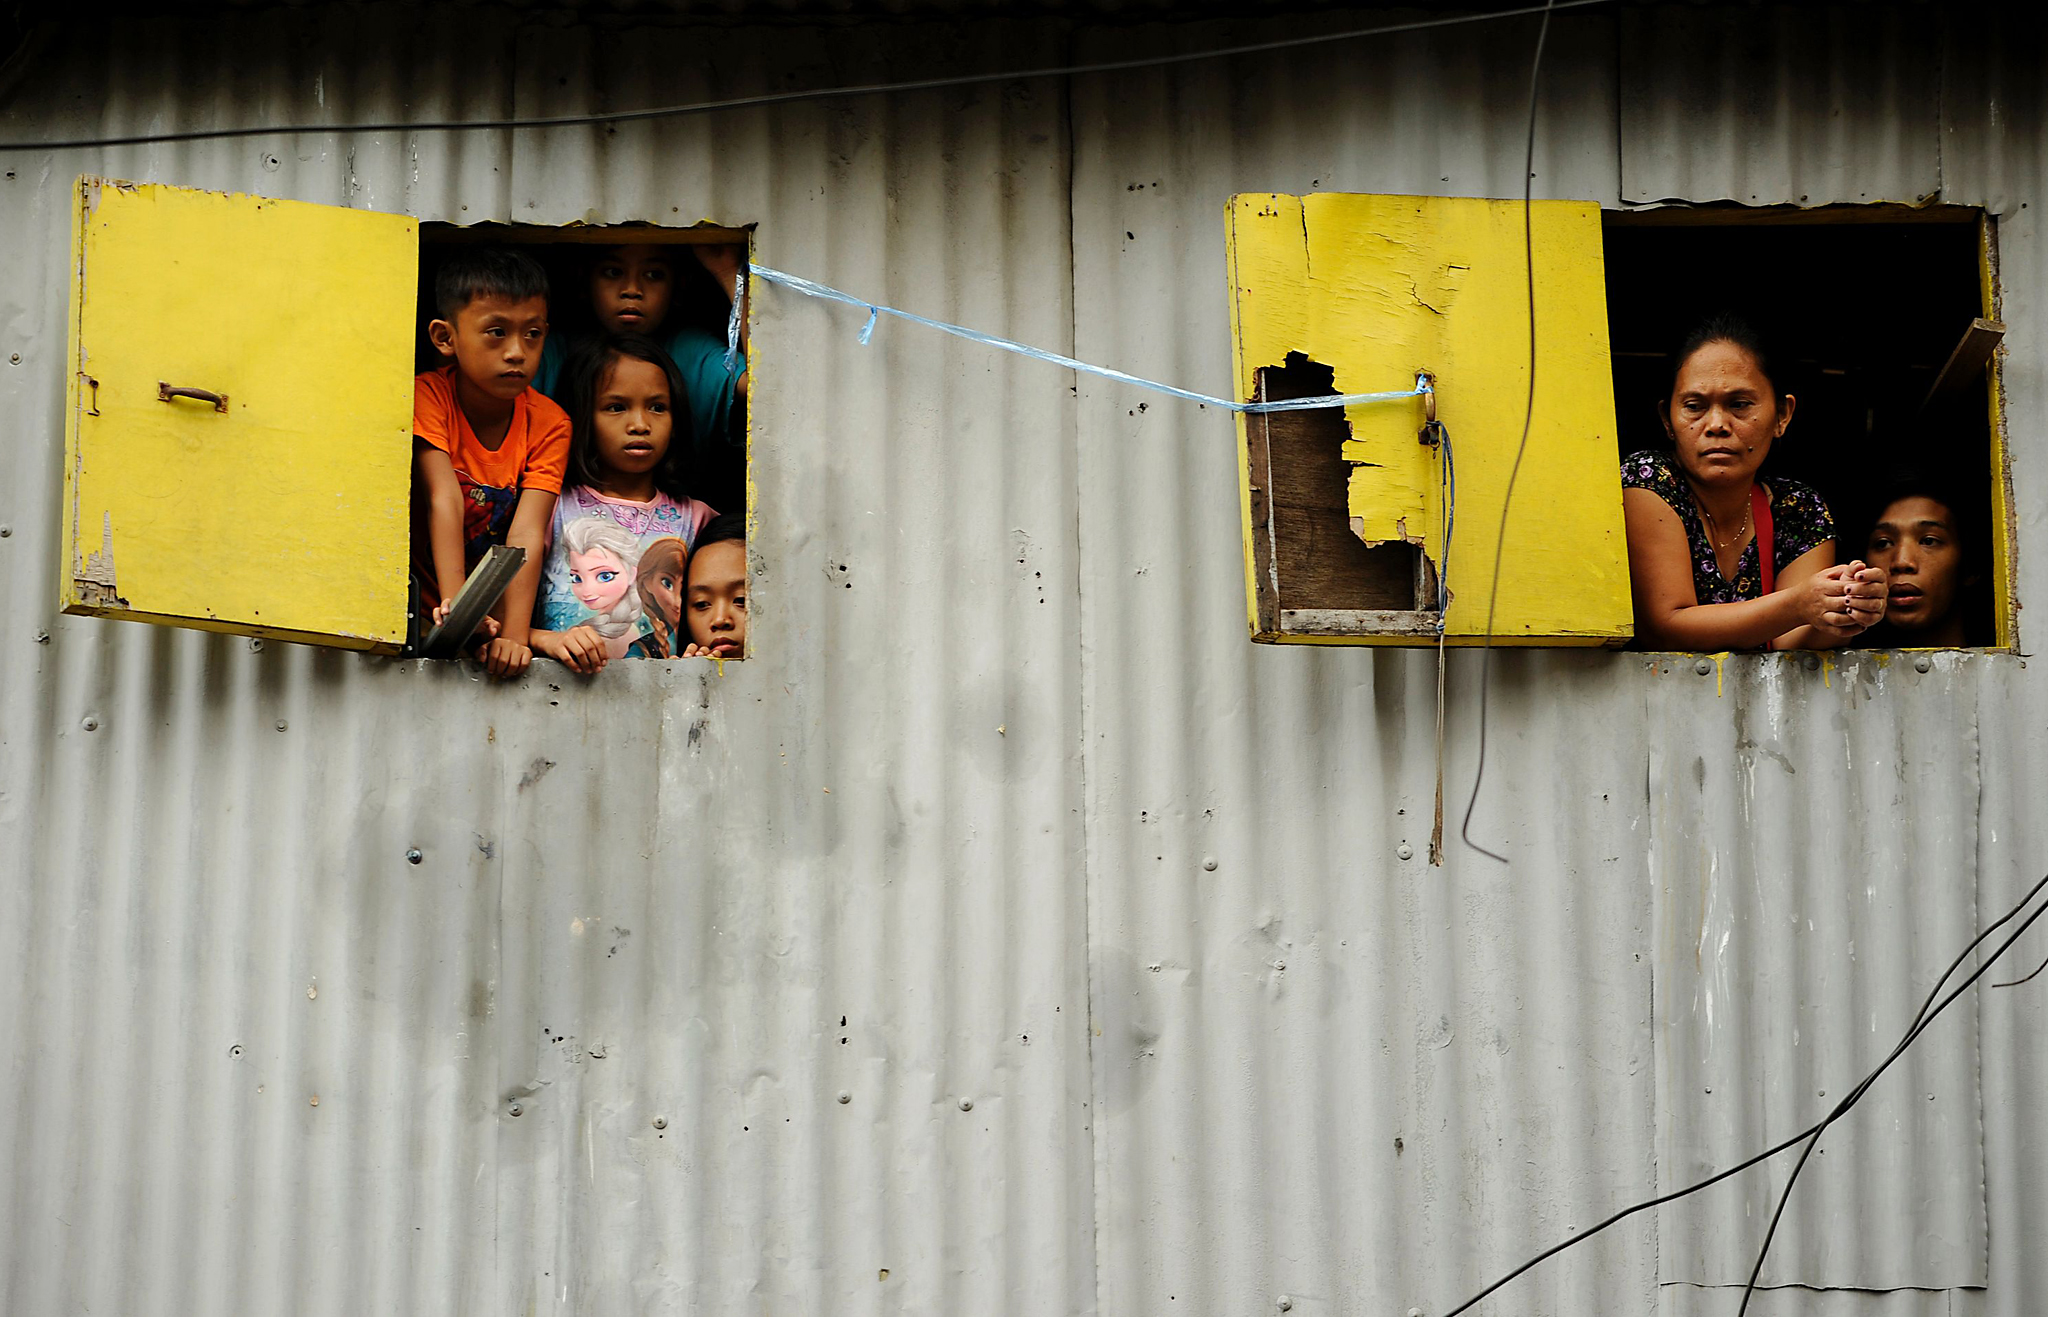 Residents look out of windows as the she...Residents look out of windows as the sheriff (not seen) of a demolition team negotiates to avoid violence during the demolition of an informal settlers' community in Manila on March 18, 2016.   Shantytowns dot the Philippine capital where many of the city's poor are forced to reside. / AFP PHOTO / NOEL CELISNOEL CELIS/AFP/Getty Images